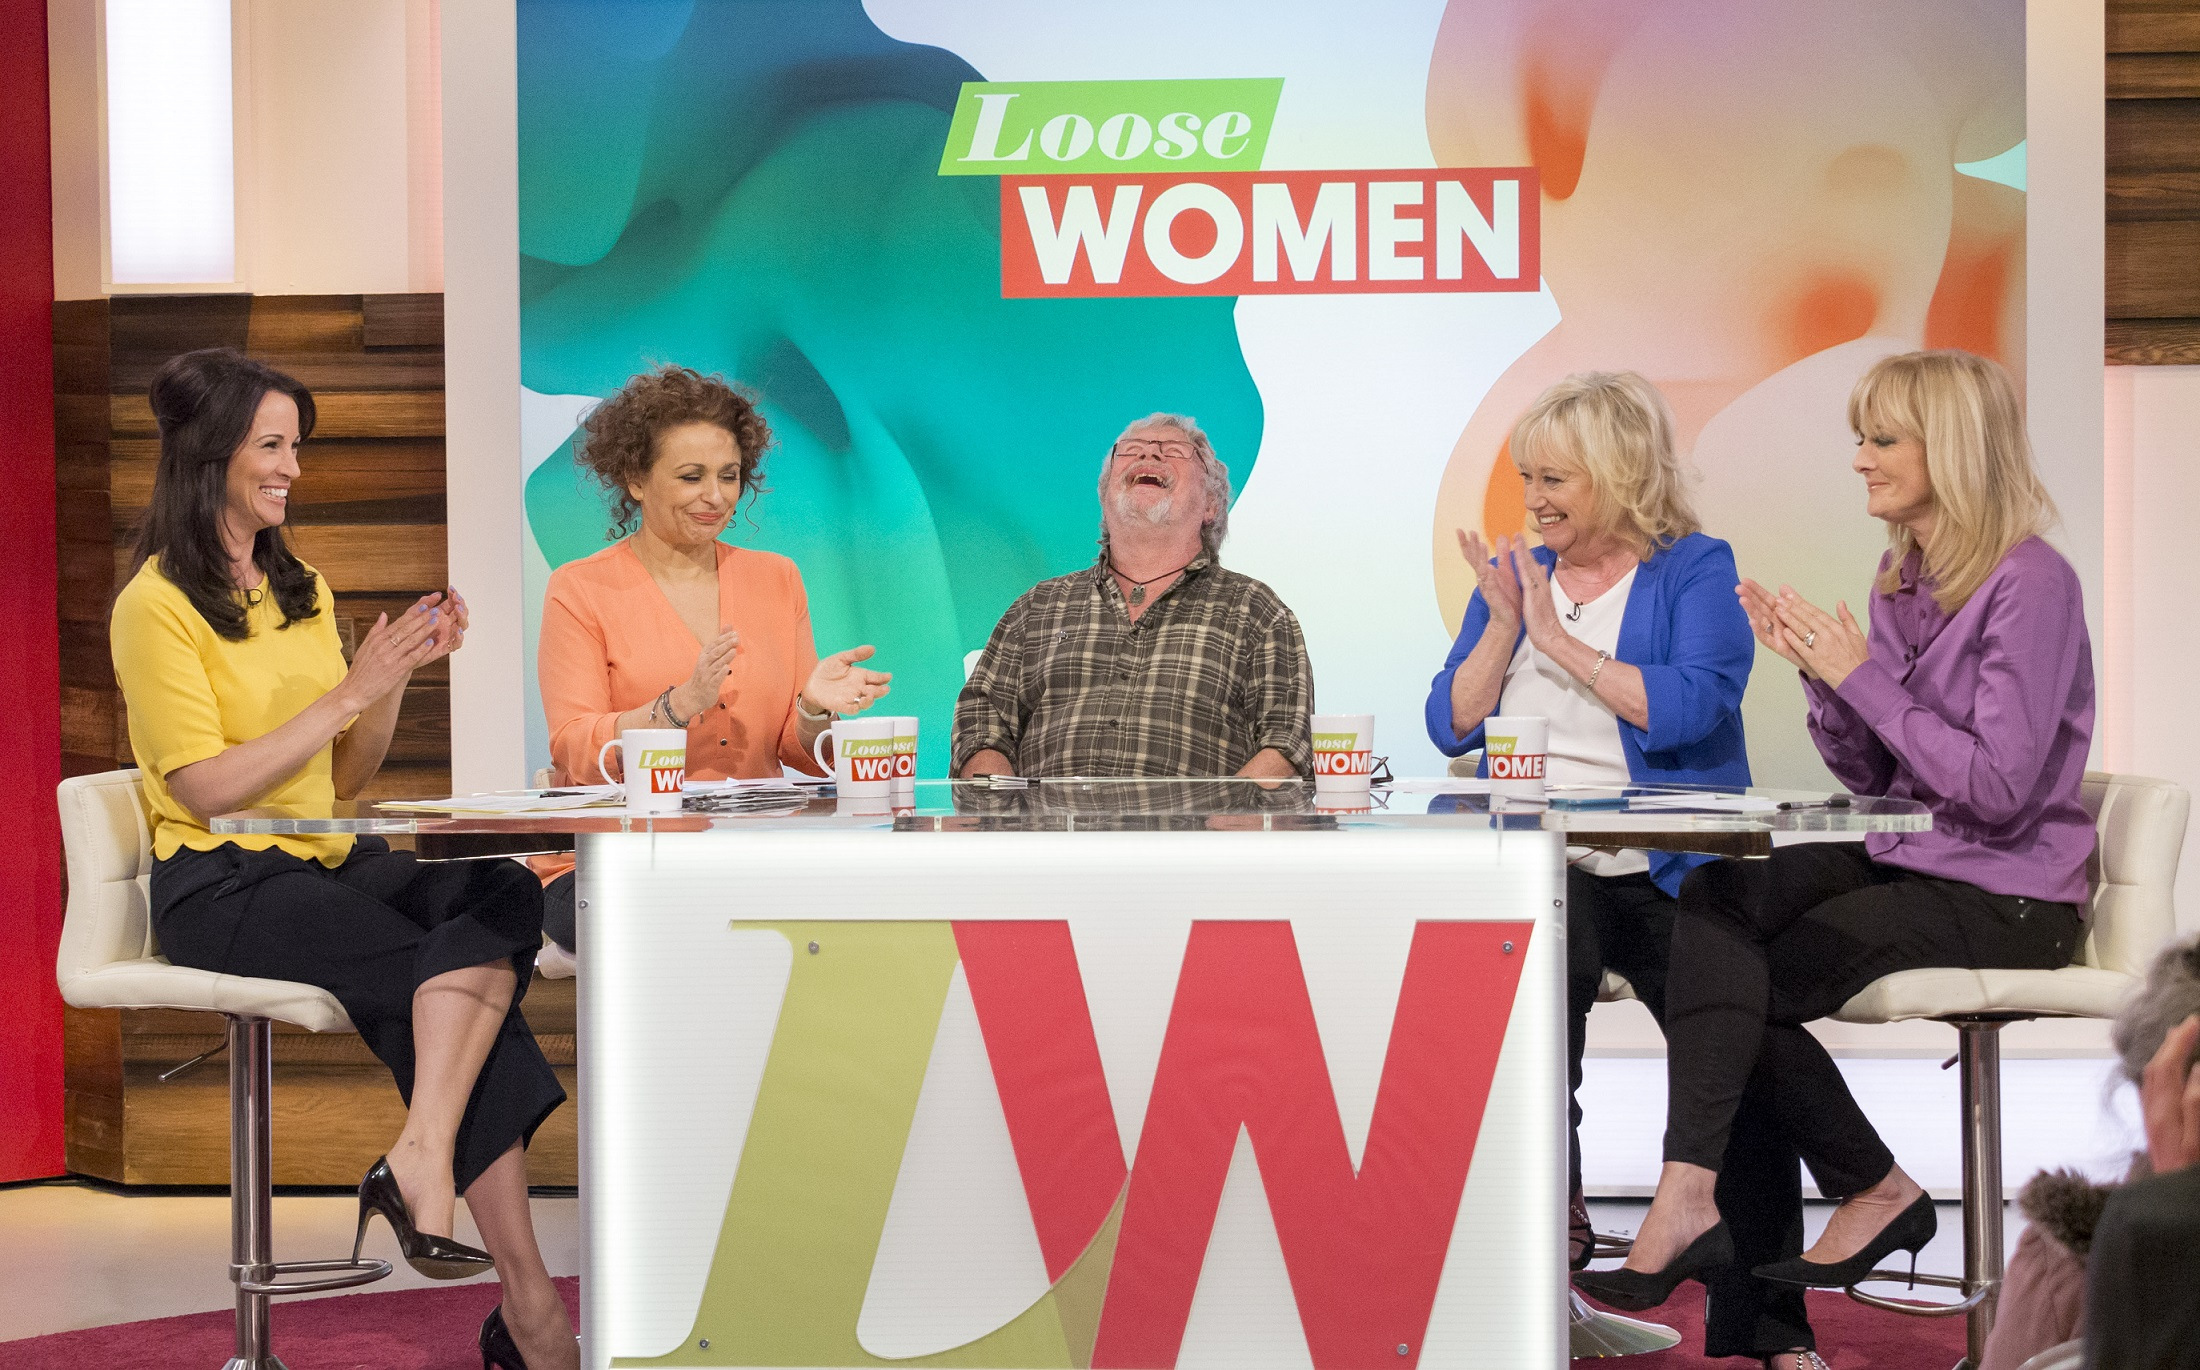 Bill Oddie Discusses Unplucked with the Loose Women